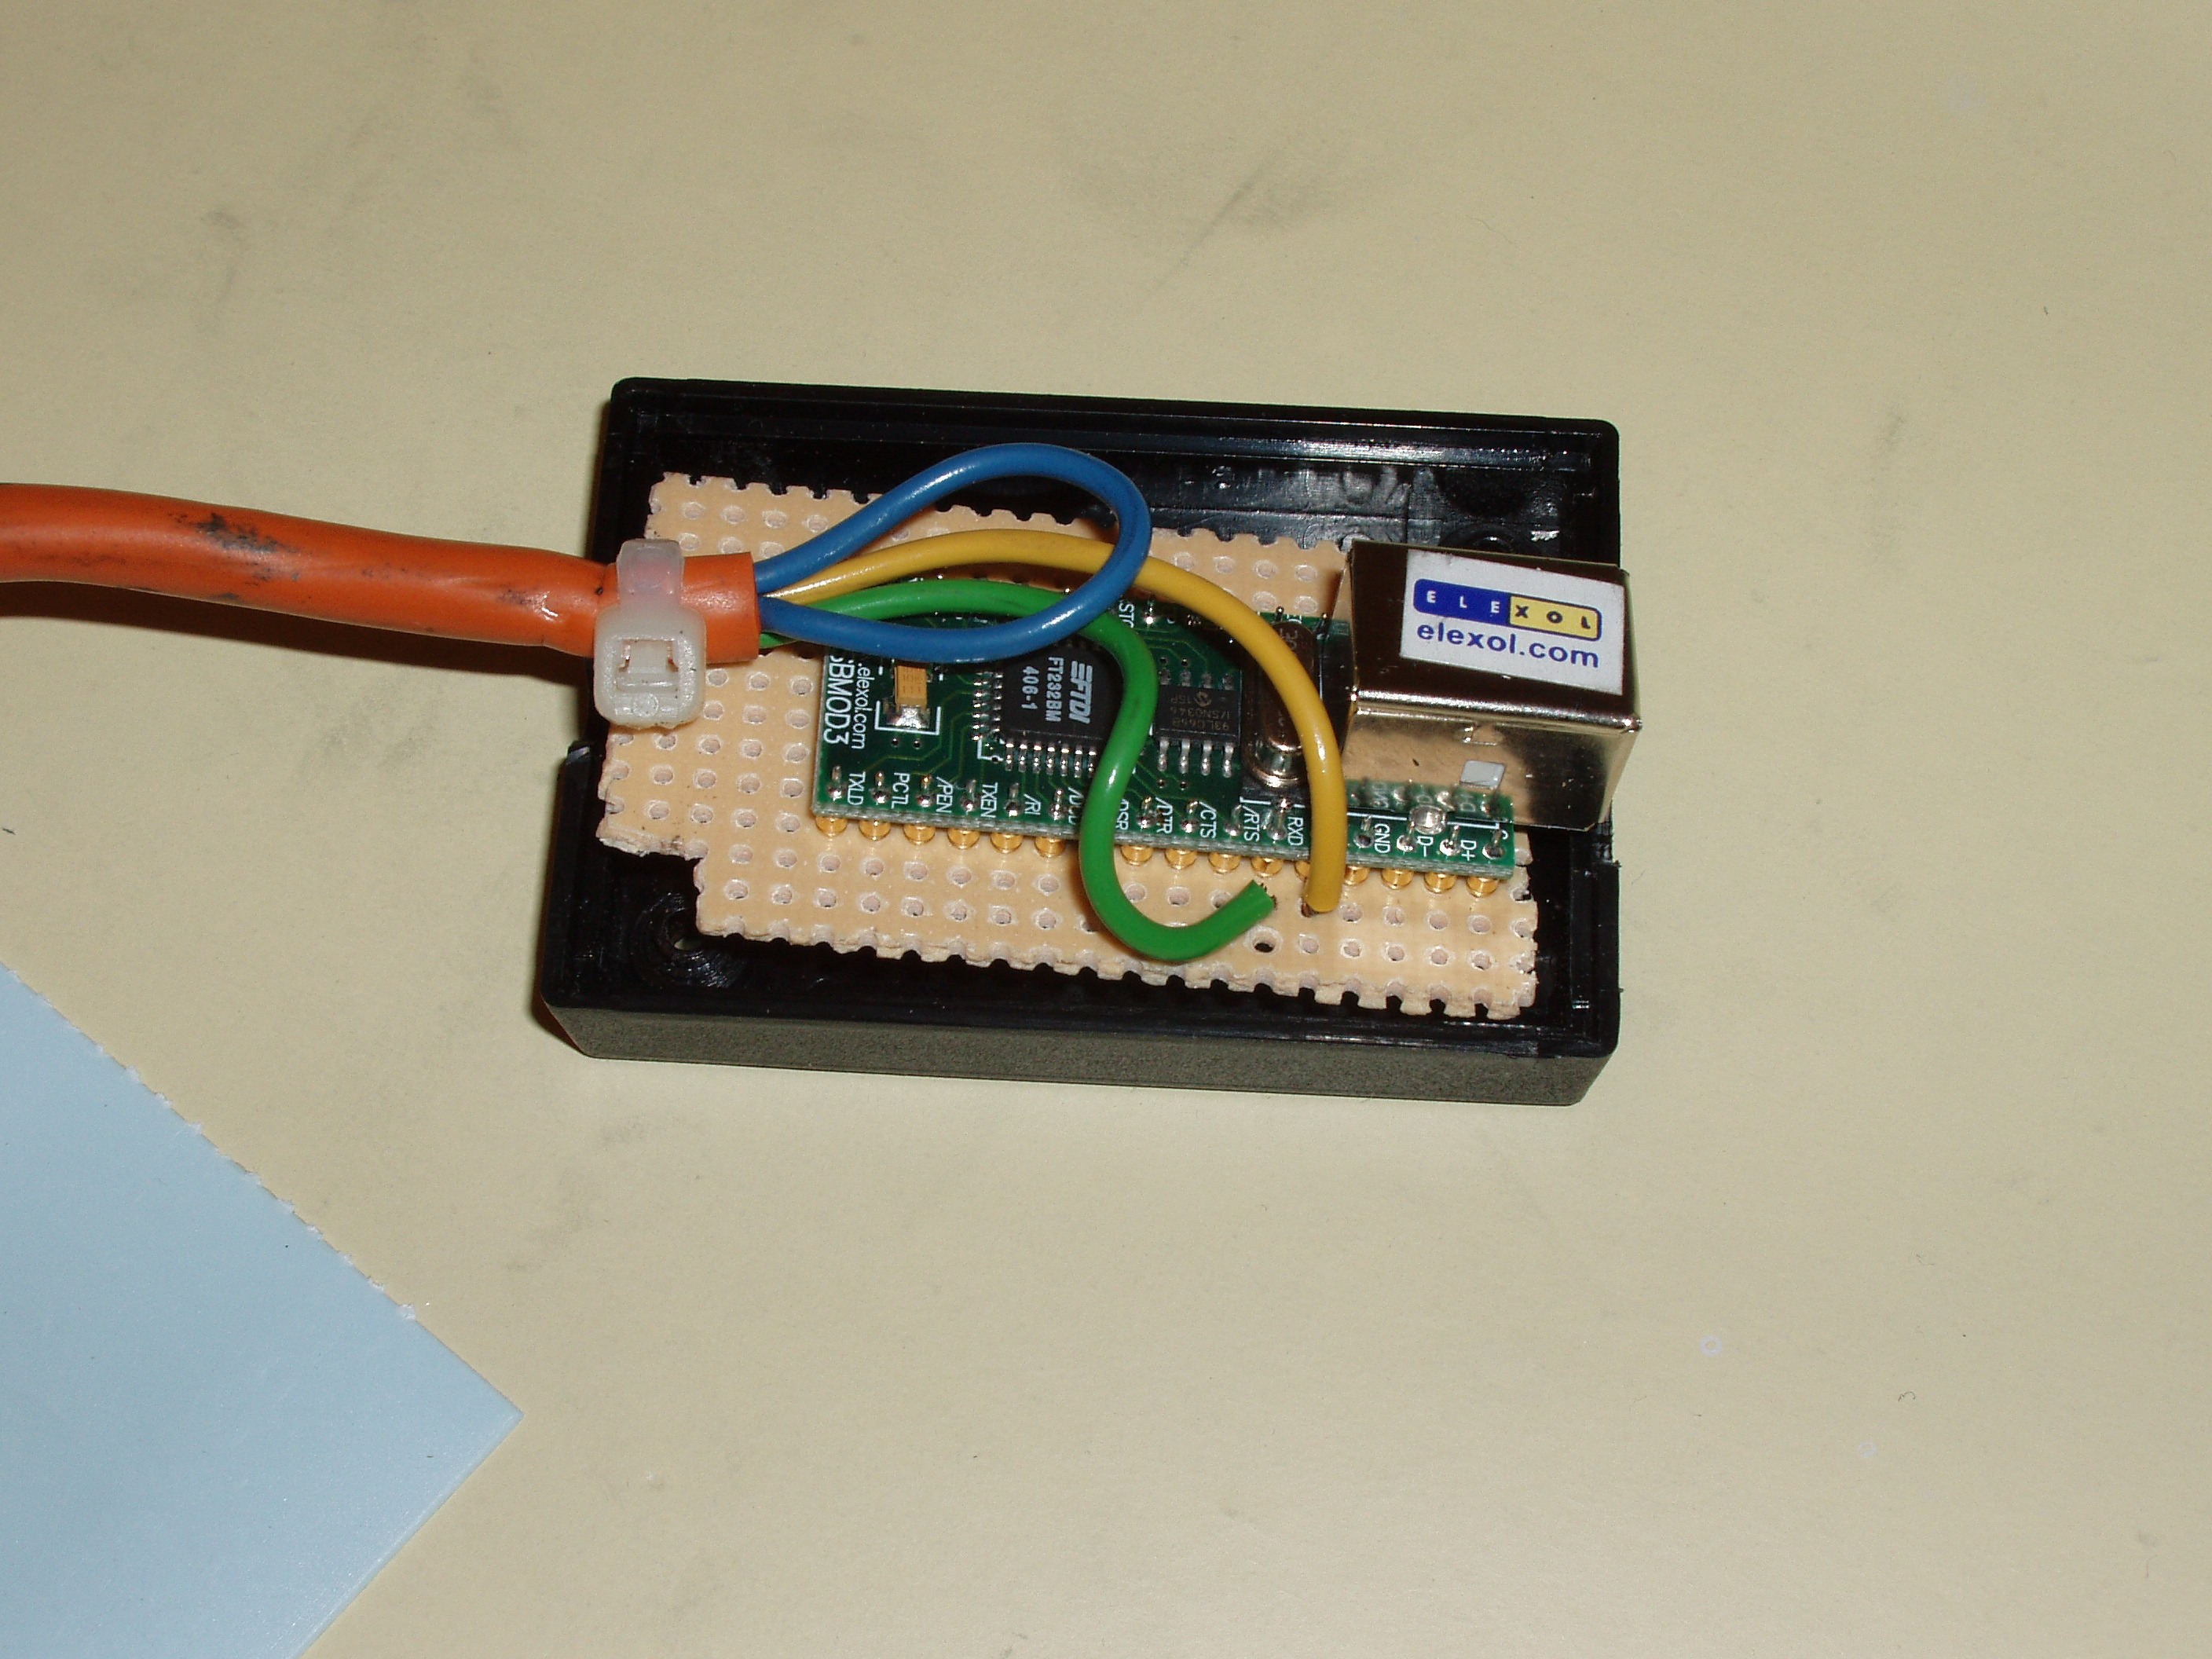 I used a bit of vector board and wire to make the needed USBMOD3  connections: